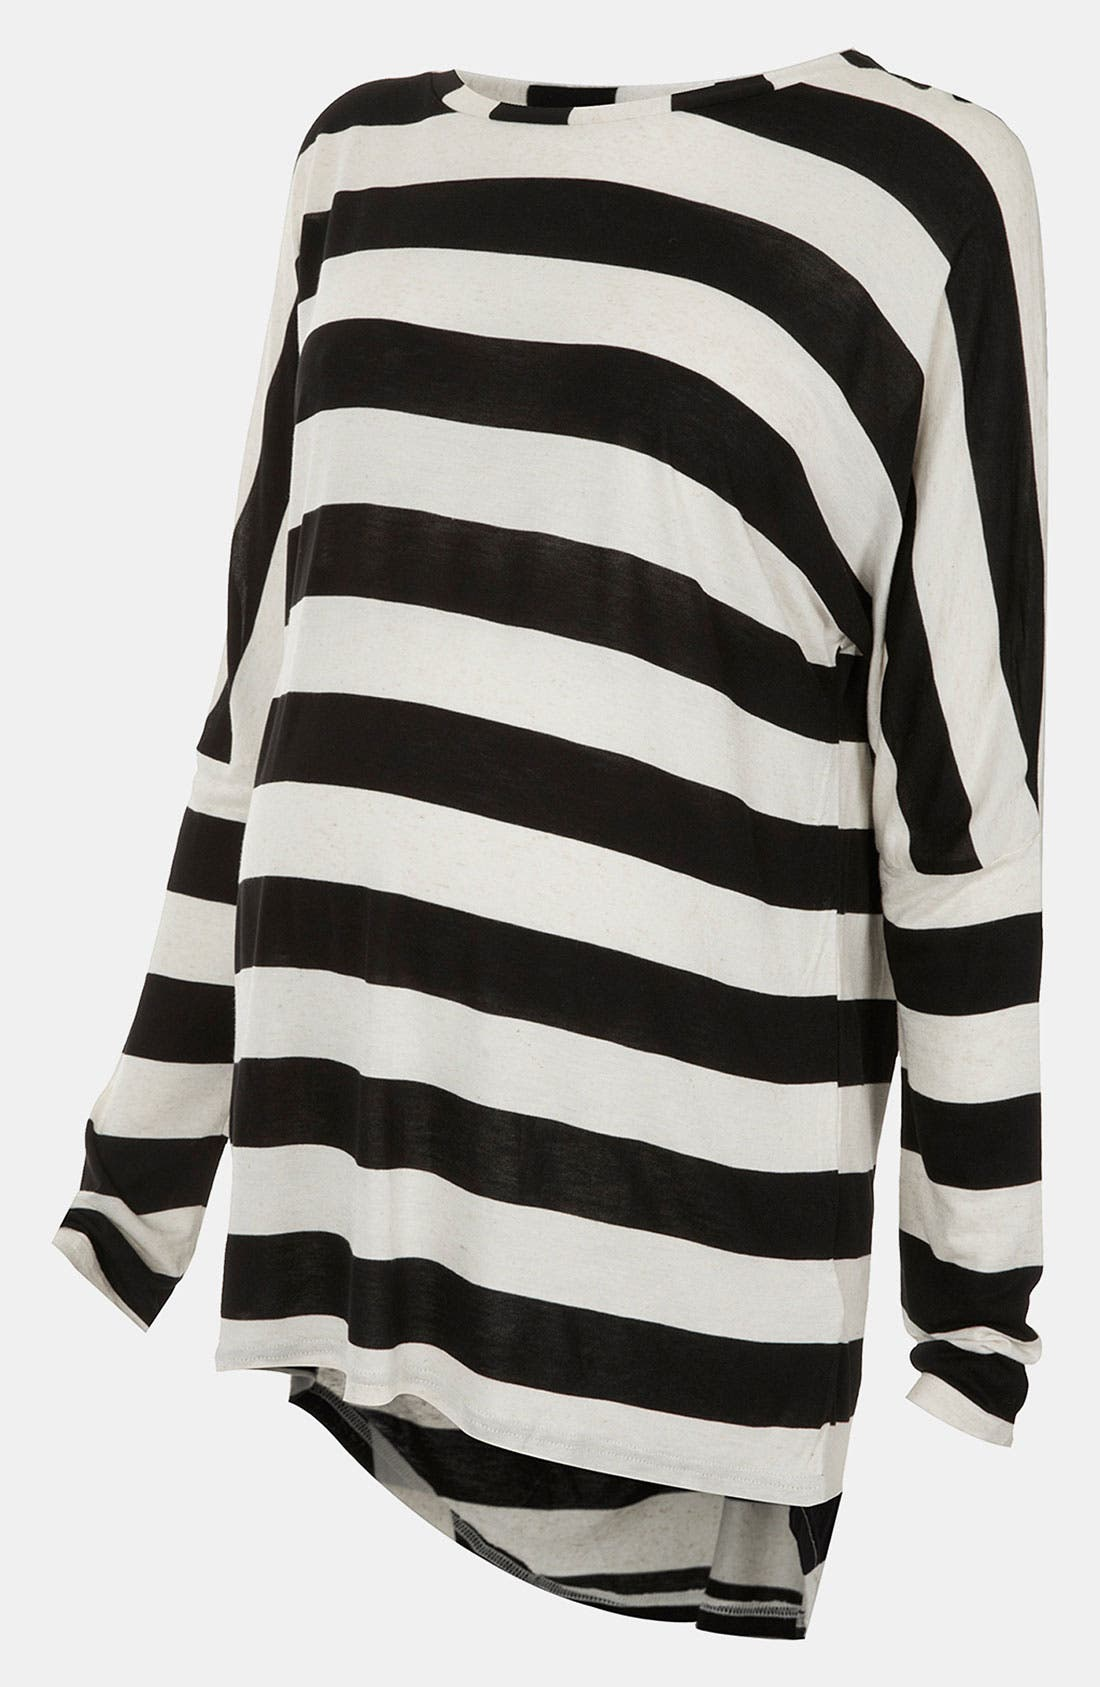 Alternate Image 1 Selected - Topshop Stripe Slubbed Maternity Top